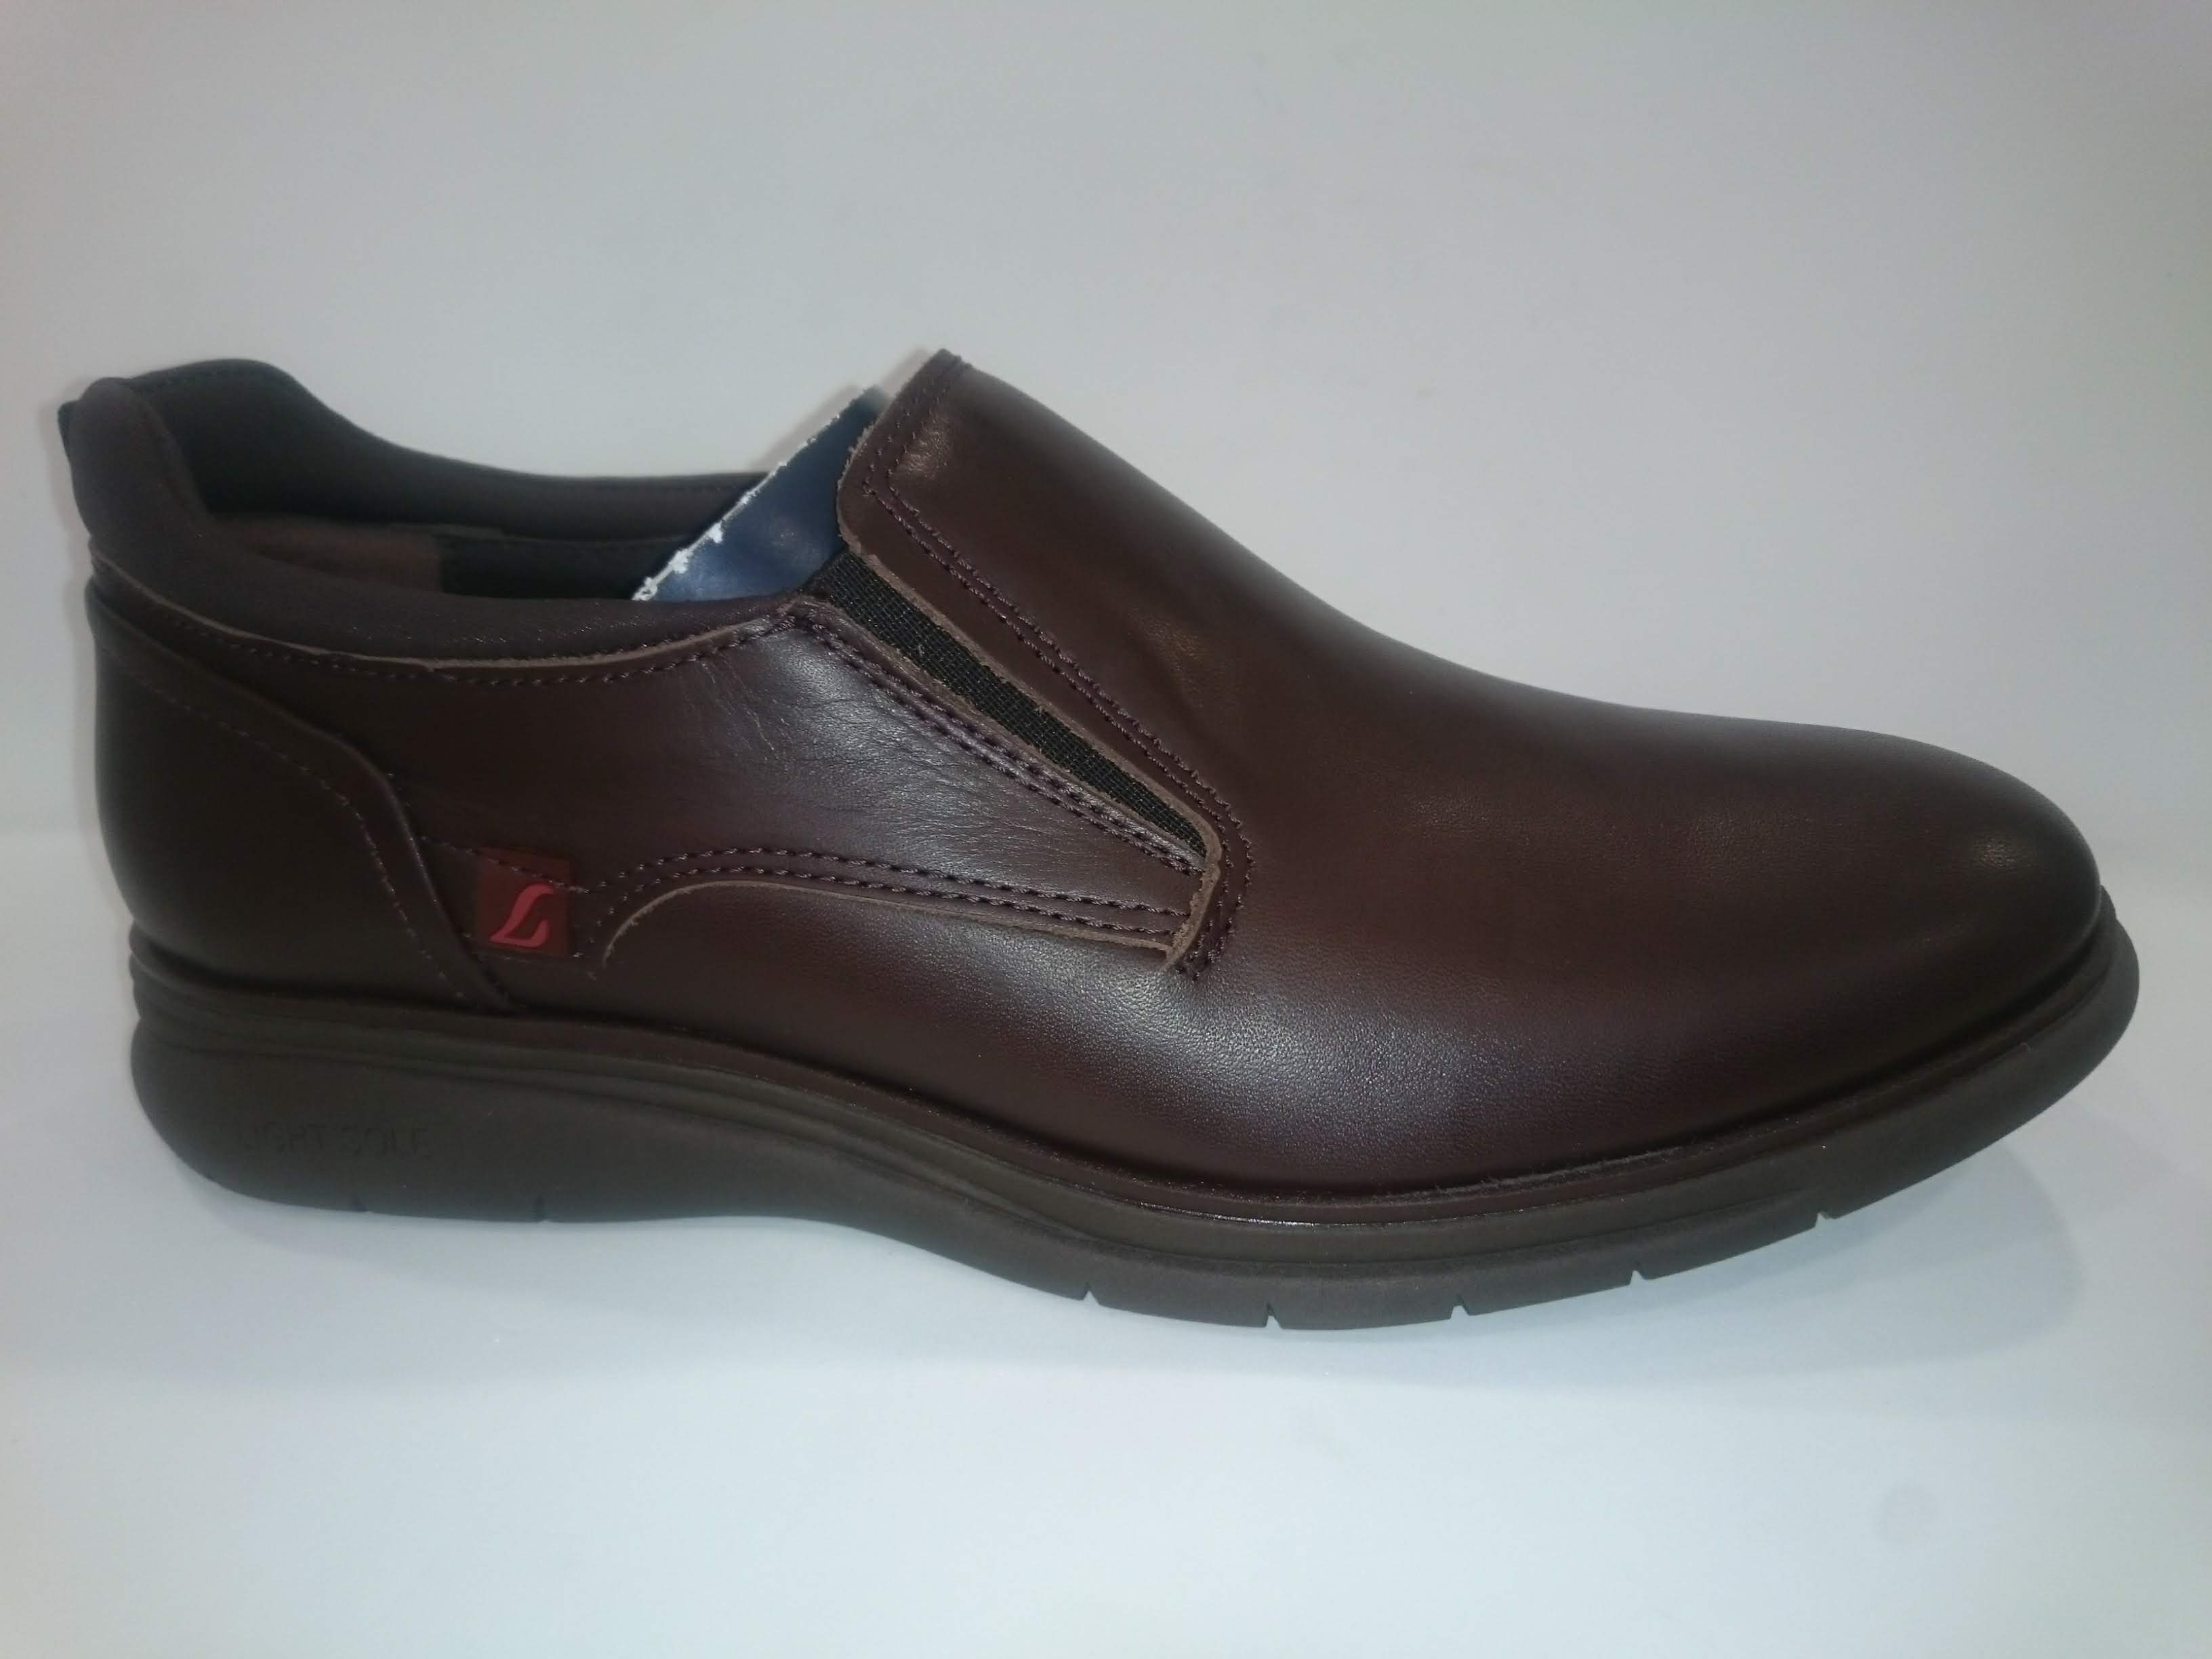 Zto. piso Light Sole Luisetti